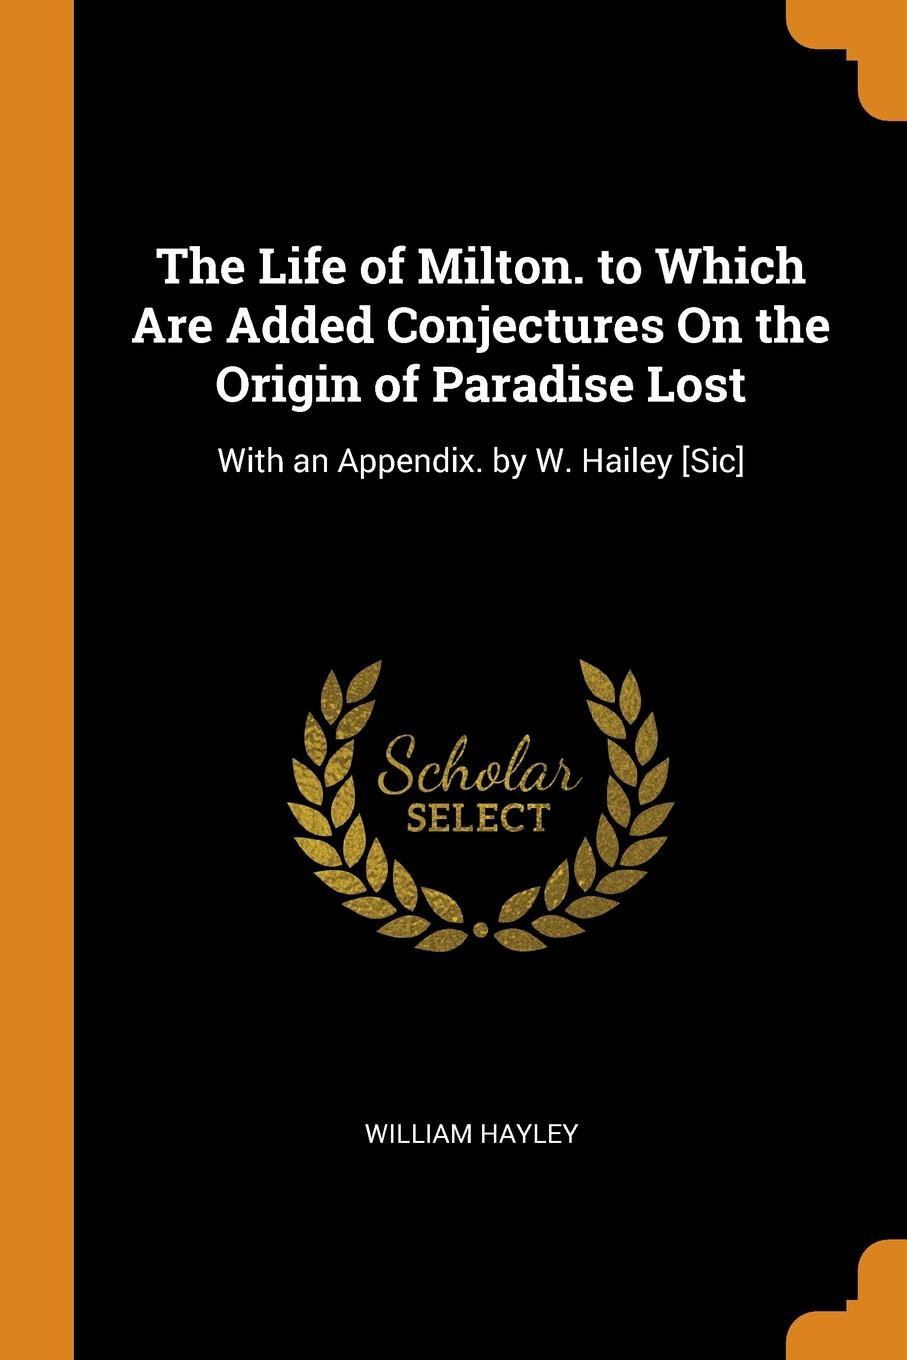 William Hayley The Life of Milton. to Which Are Added Conjectures On the Origin of Paradise Lost. With an Appendix. by W. Hailey .Sic.